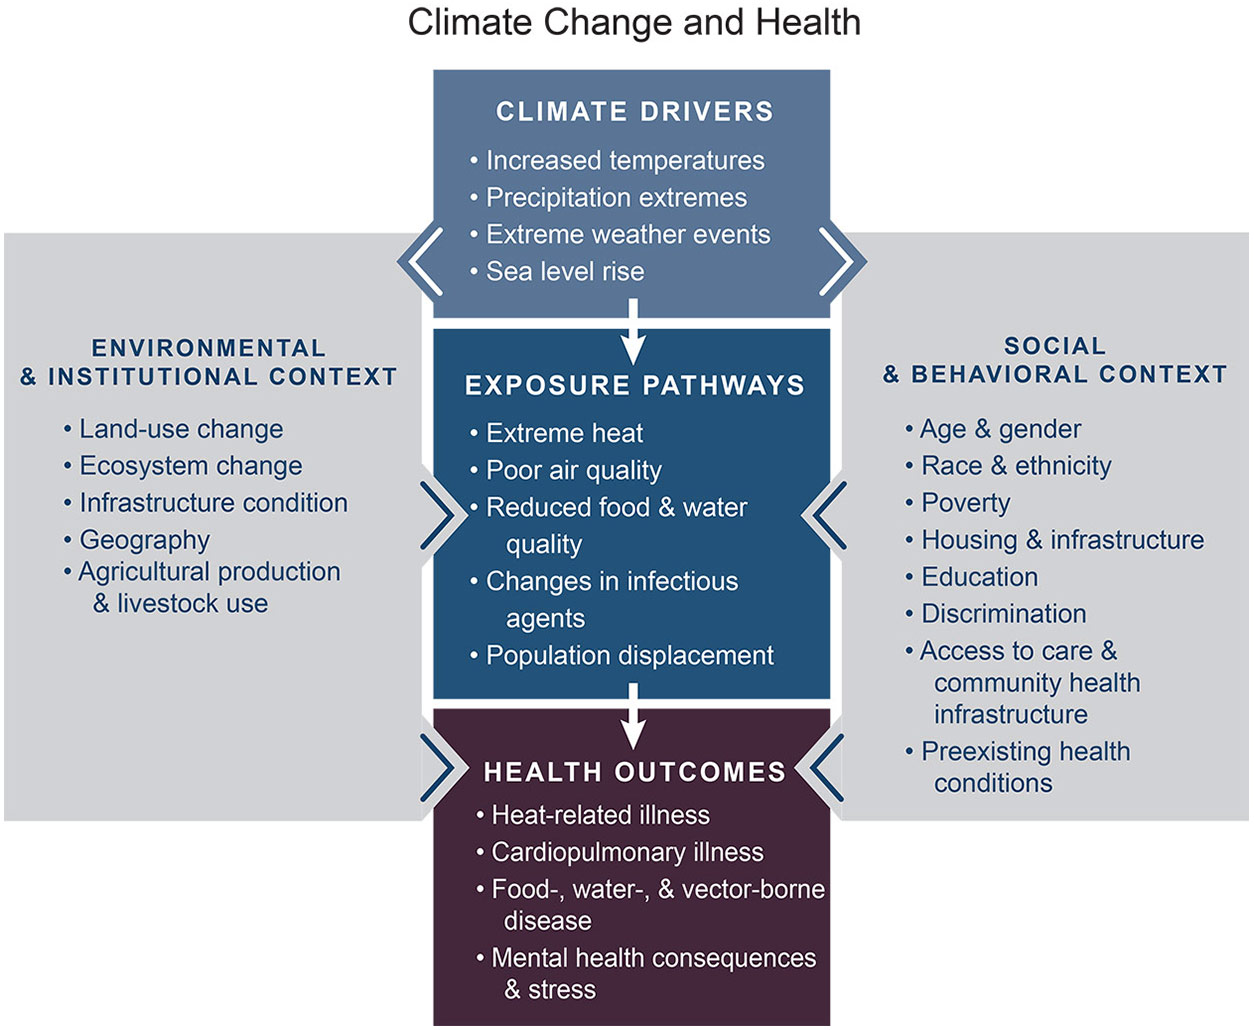 Climate Change and Health diagram